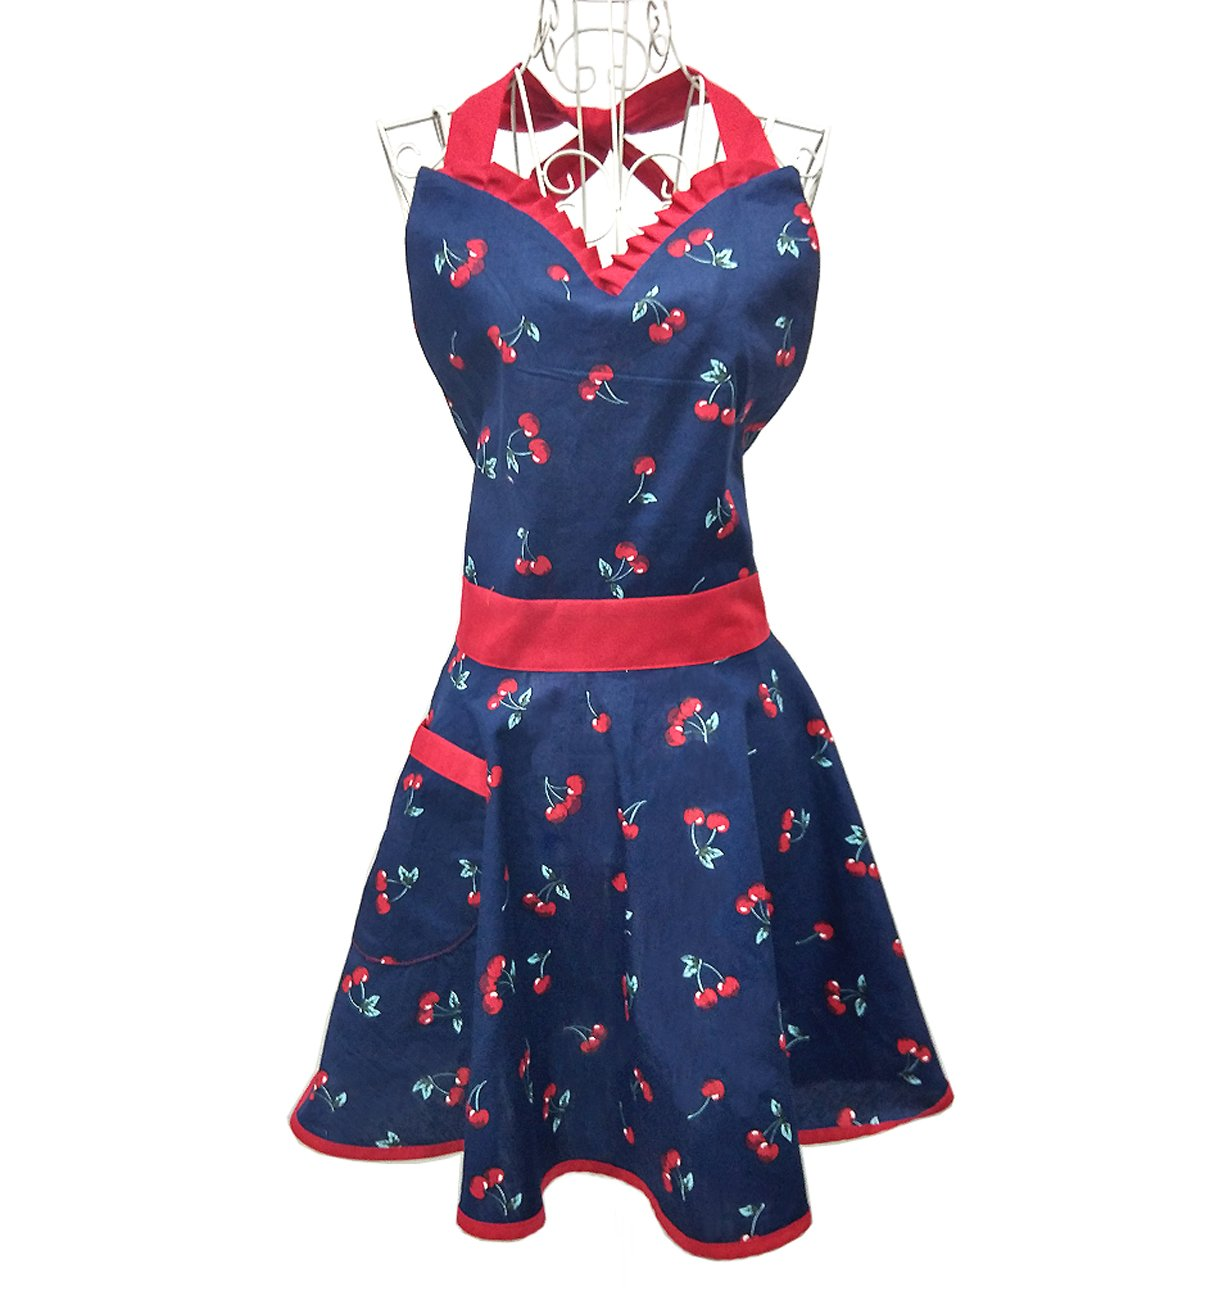 Hyzrz Cute Lovely Lady's Kitchen Fashion Blue Flirty Apron for Women's Girls with Pocket